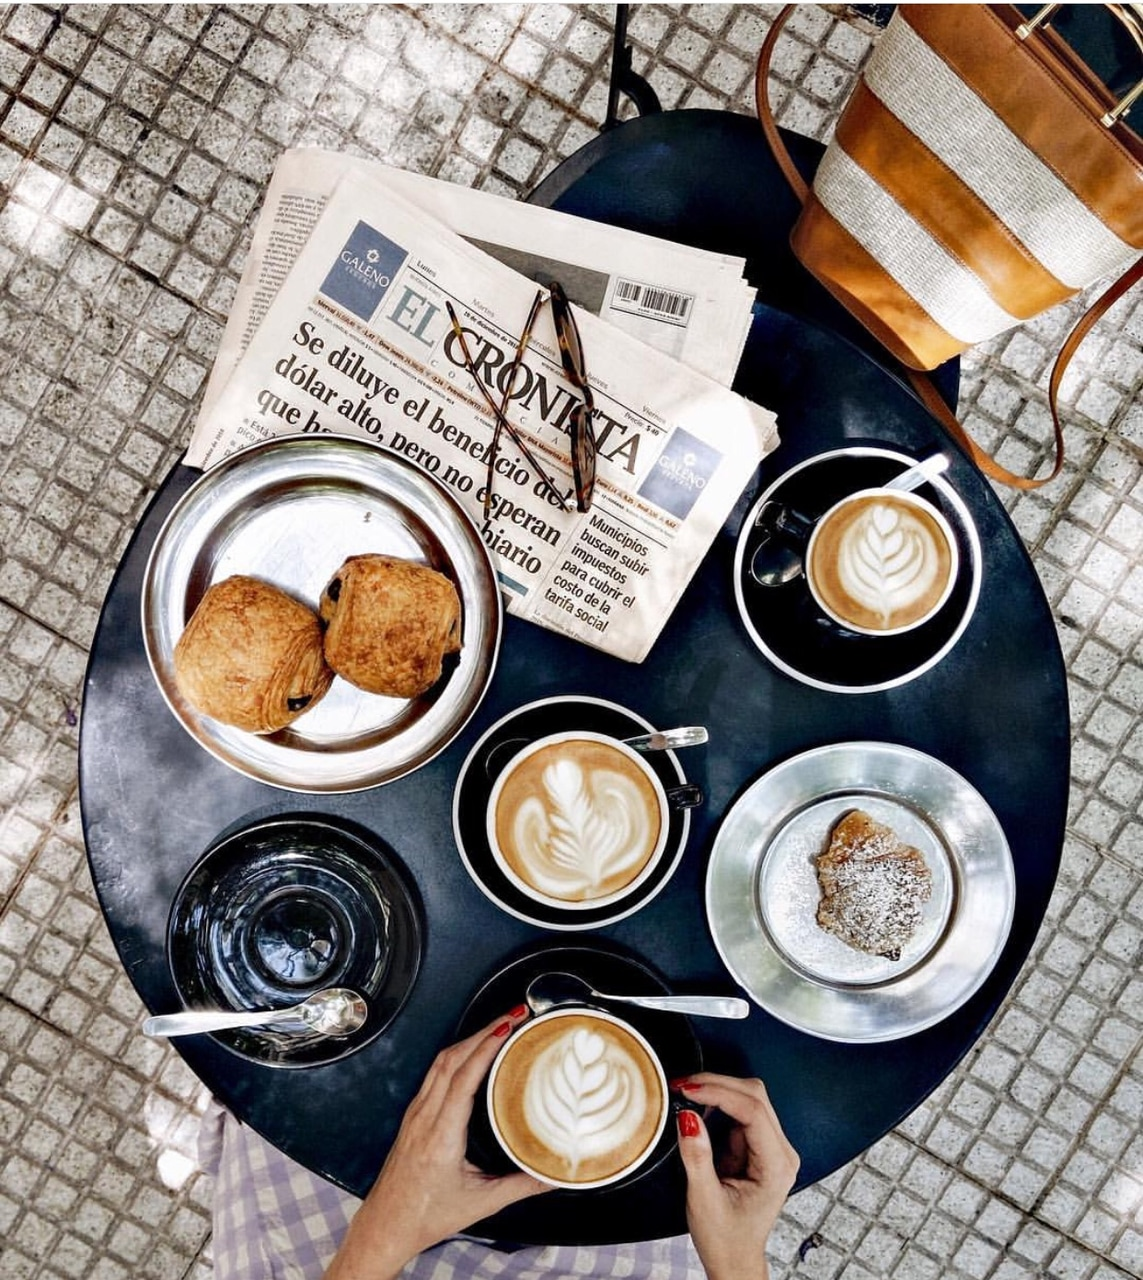 java, espresso, morning inspo and pastries